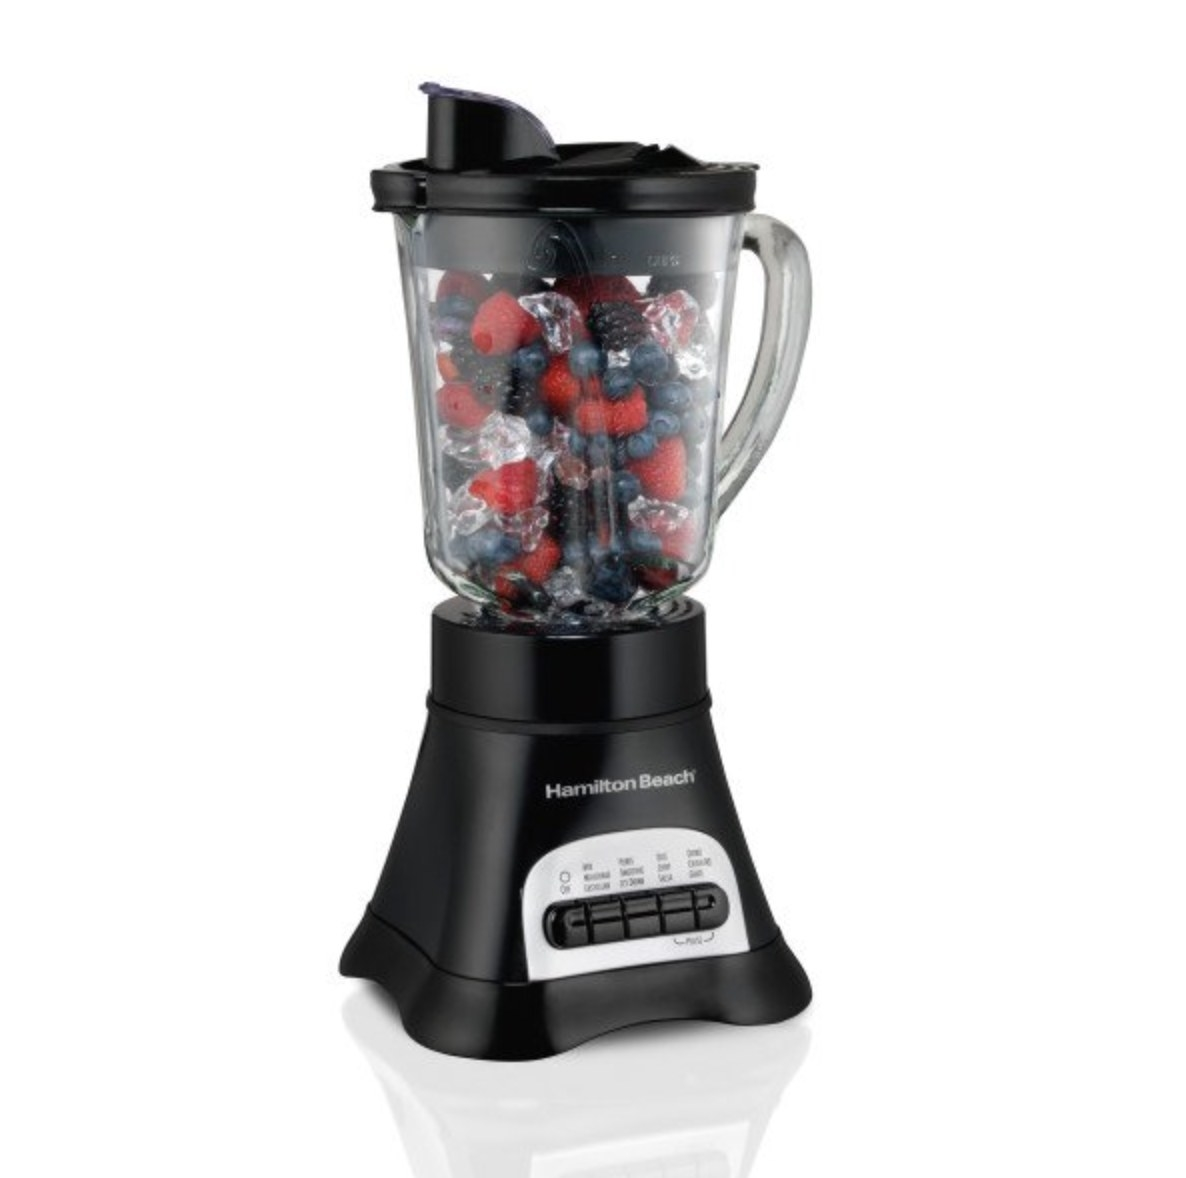 The blender filled with berries